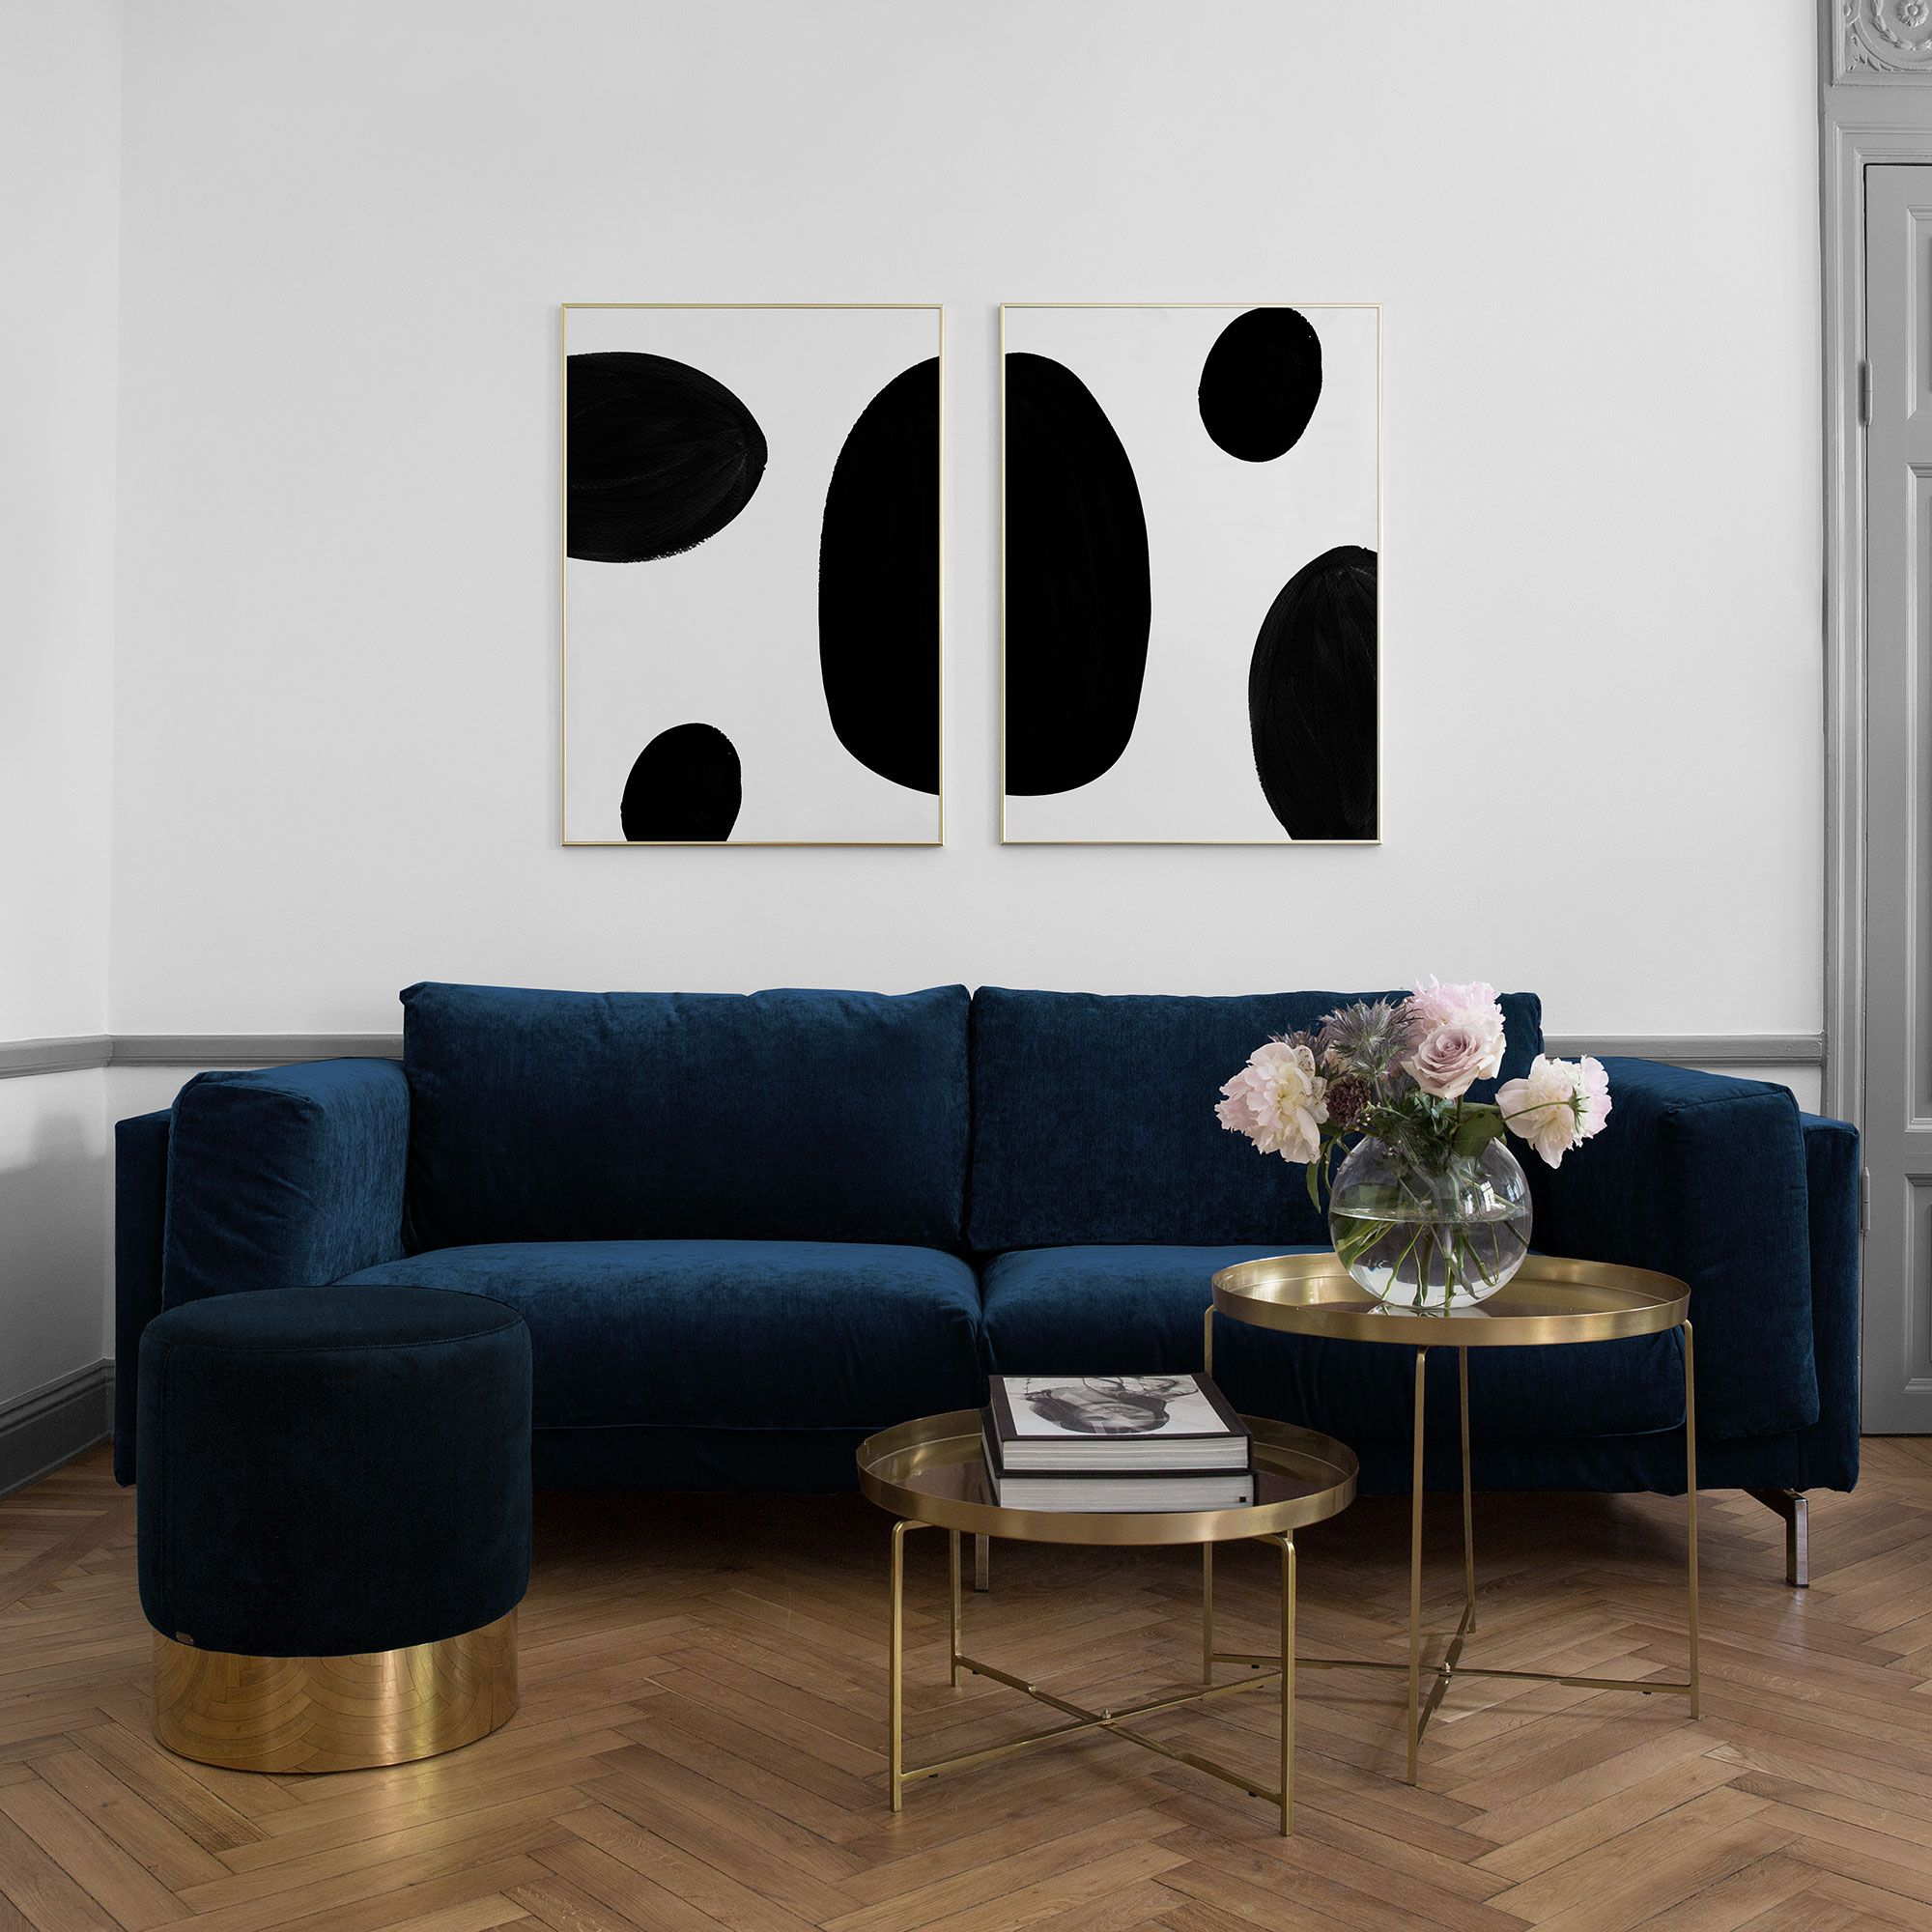 Glamorous Living Room With A Blue Velvet Sofa And Pouf Round